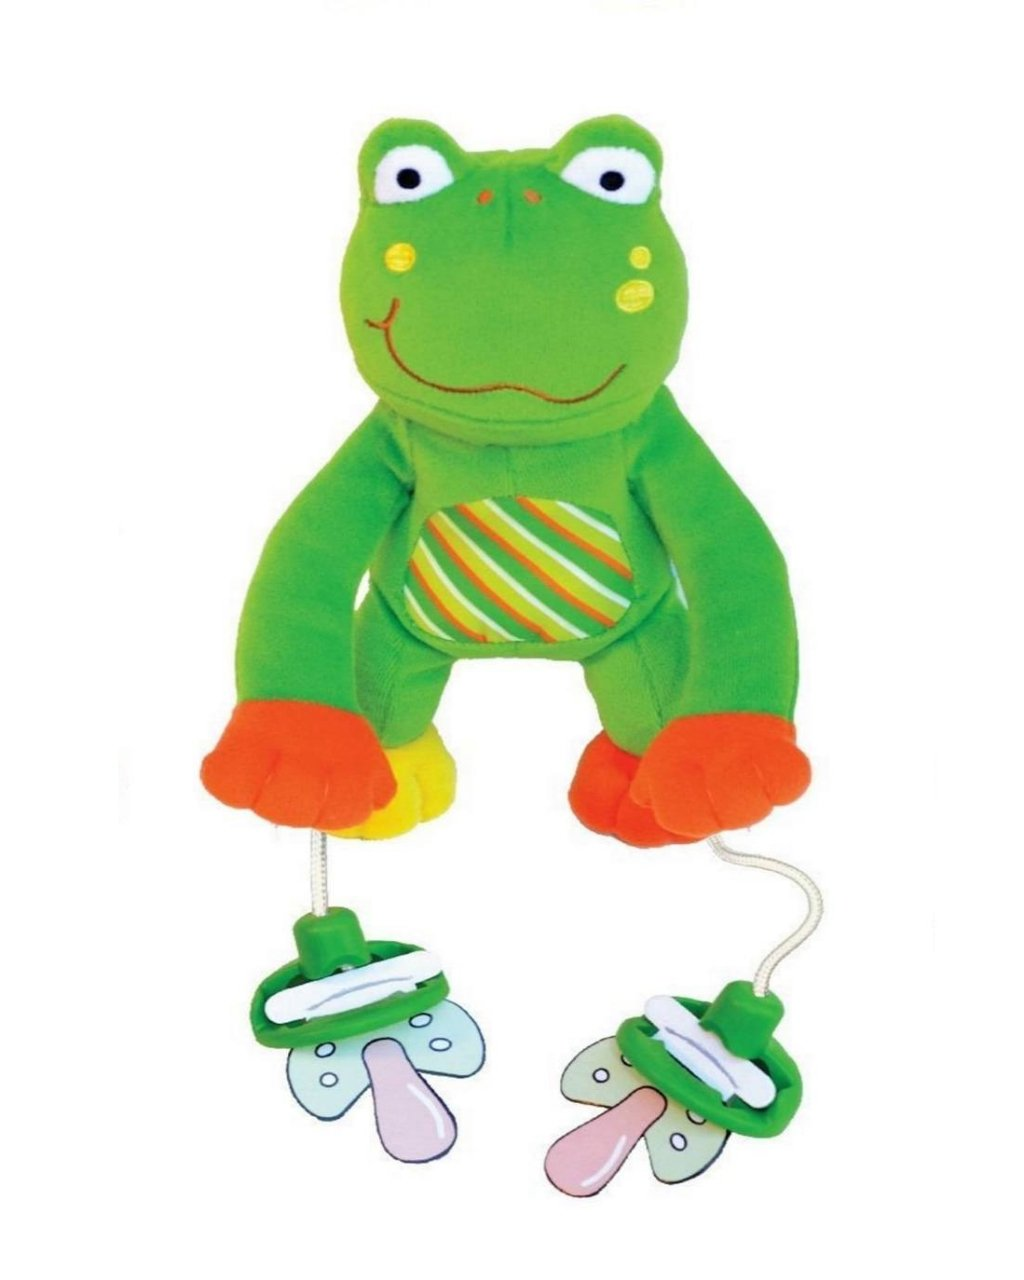 The Original PullyPalz Pacifier Holder ''As Seen on Shark Tank!'' Puddles the Frog